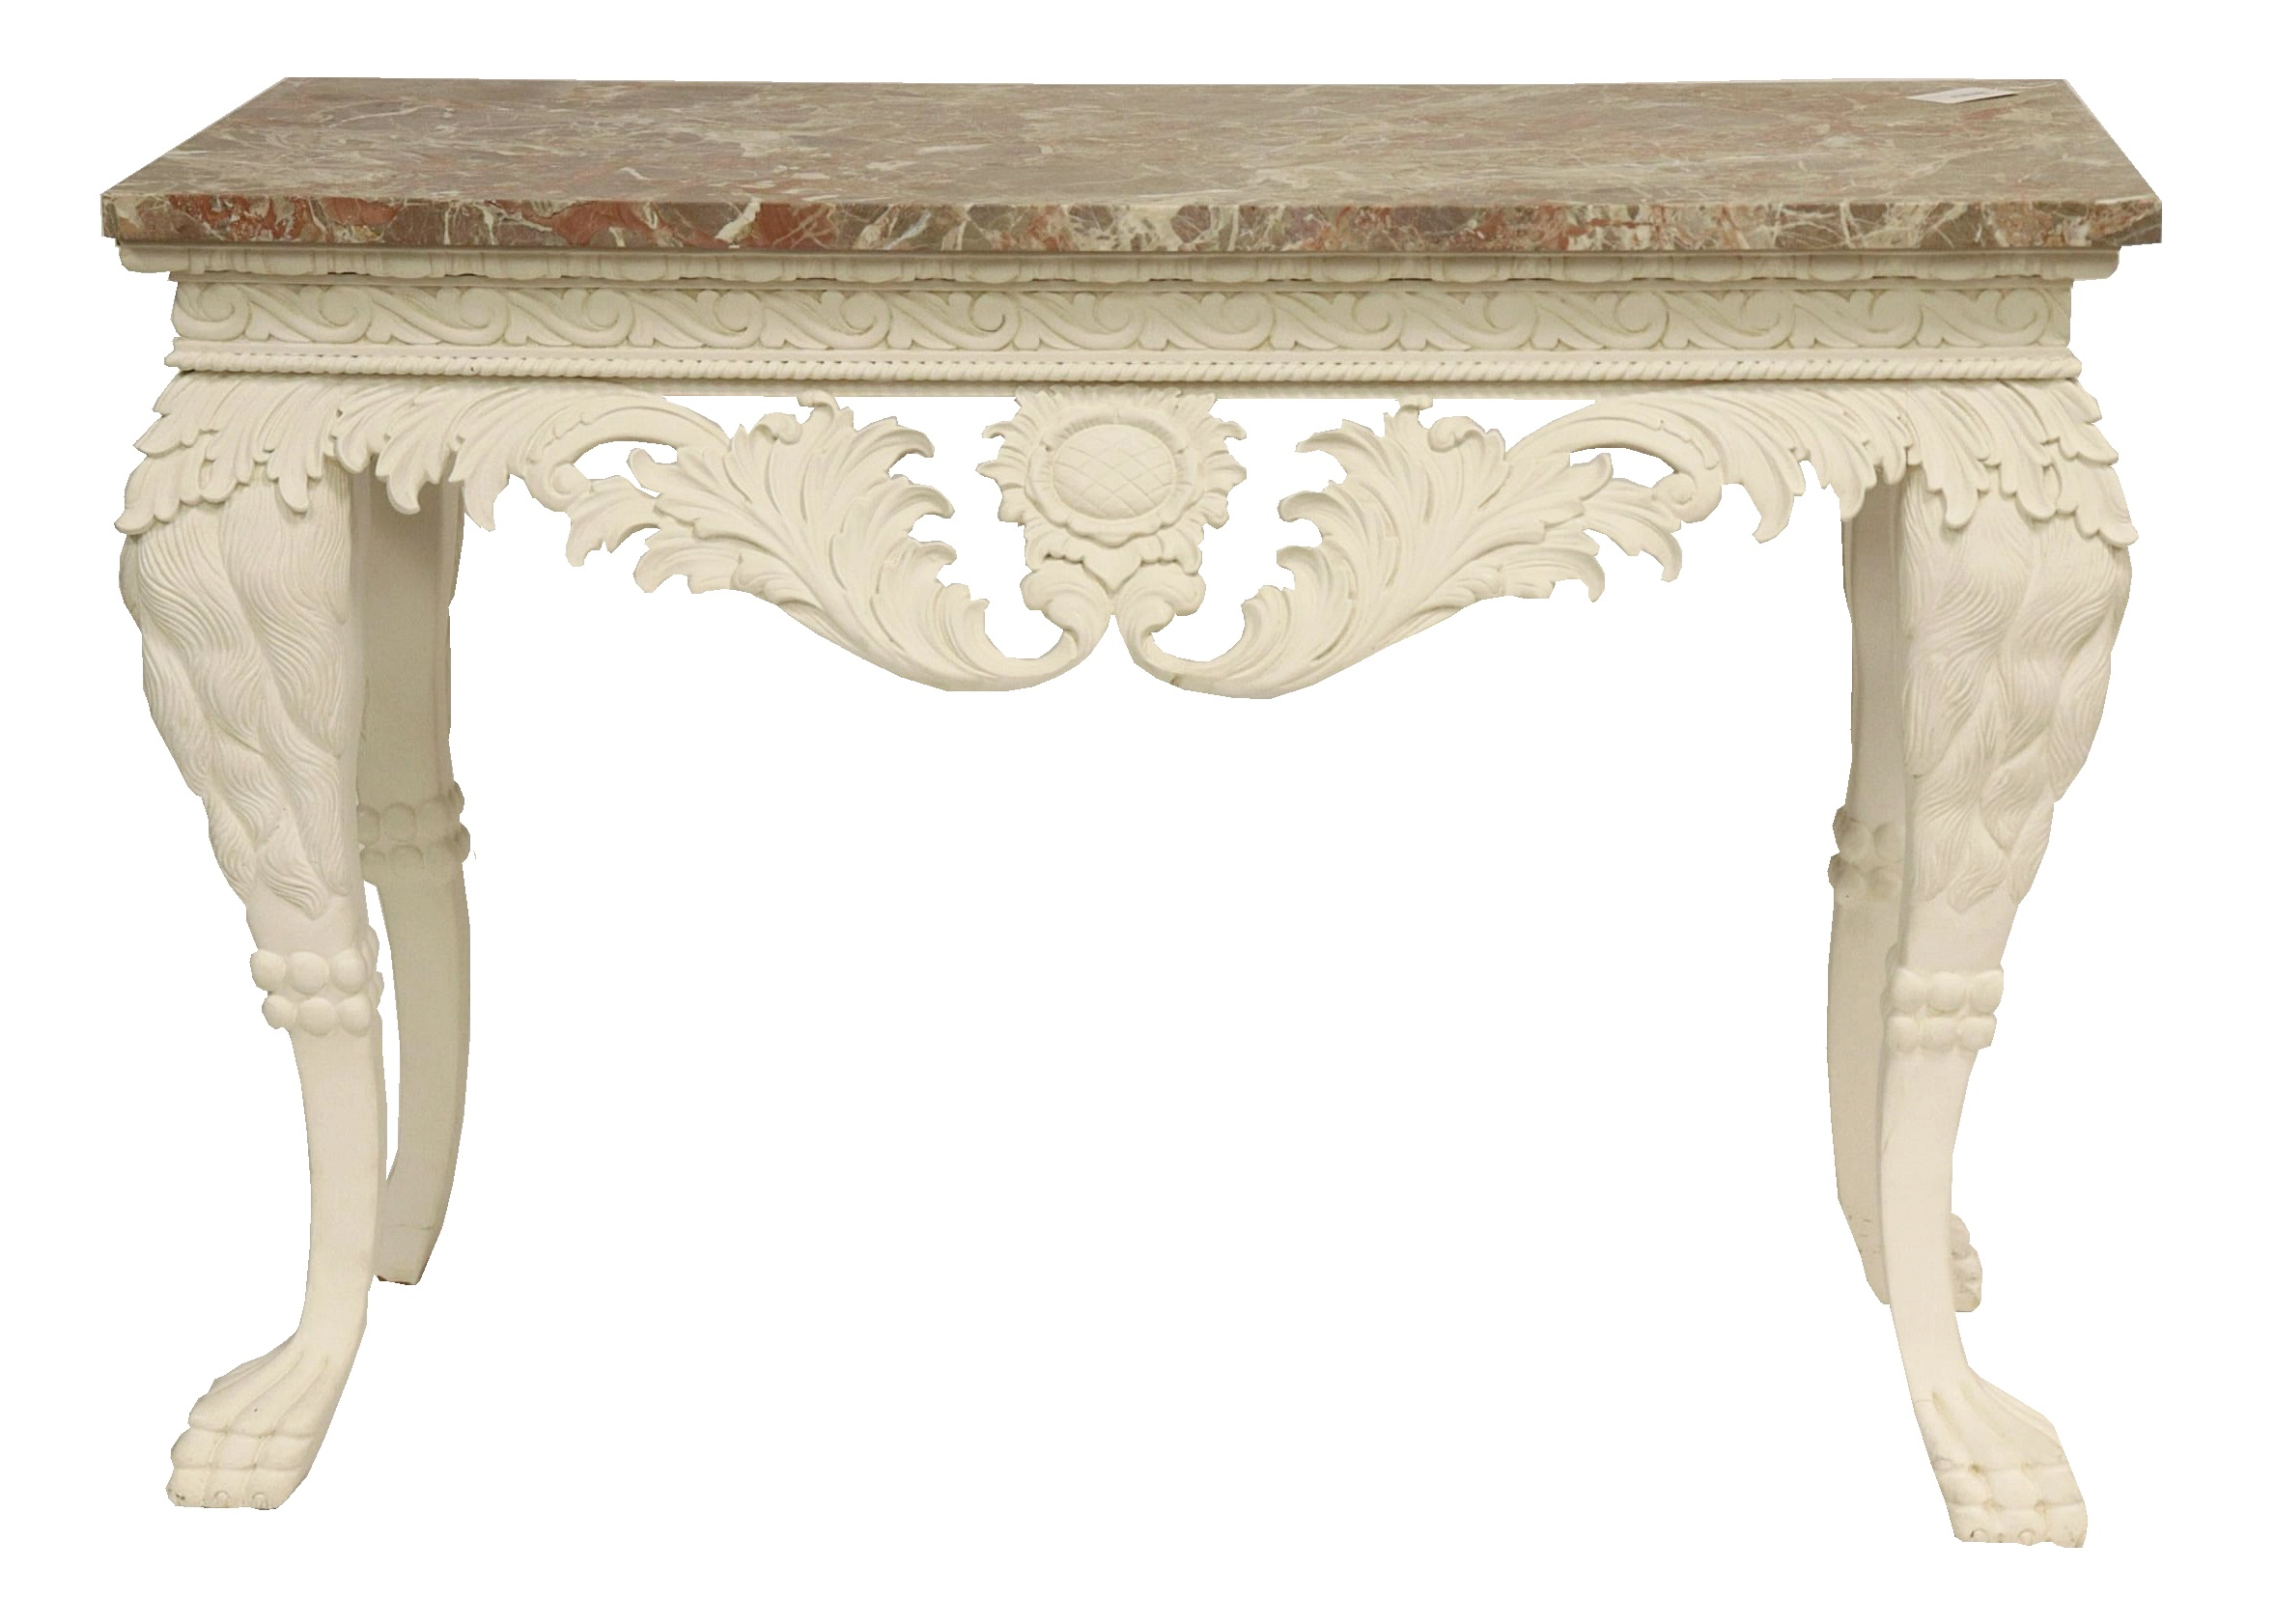 Irish Style White Painted & Marble Top Console, From The Estate Of Edward Bazinet. Sold For $11,700